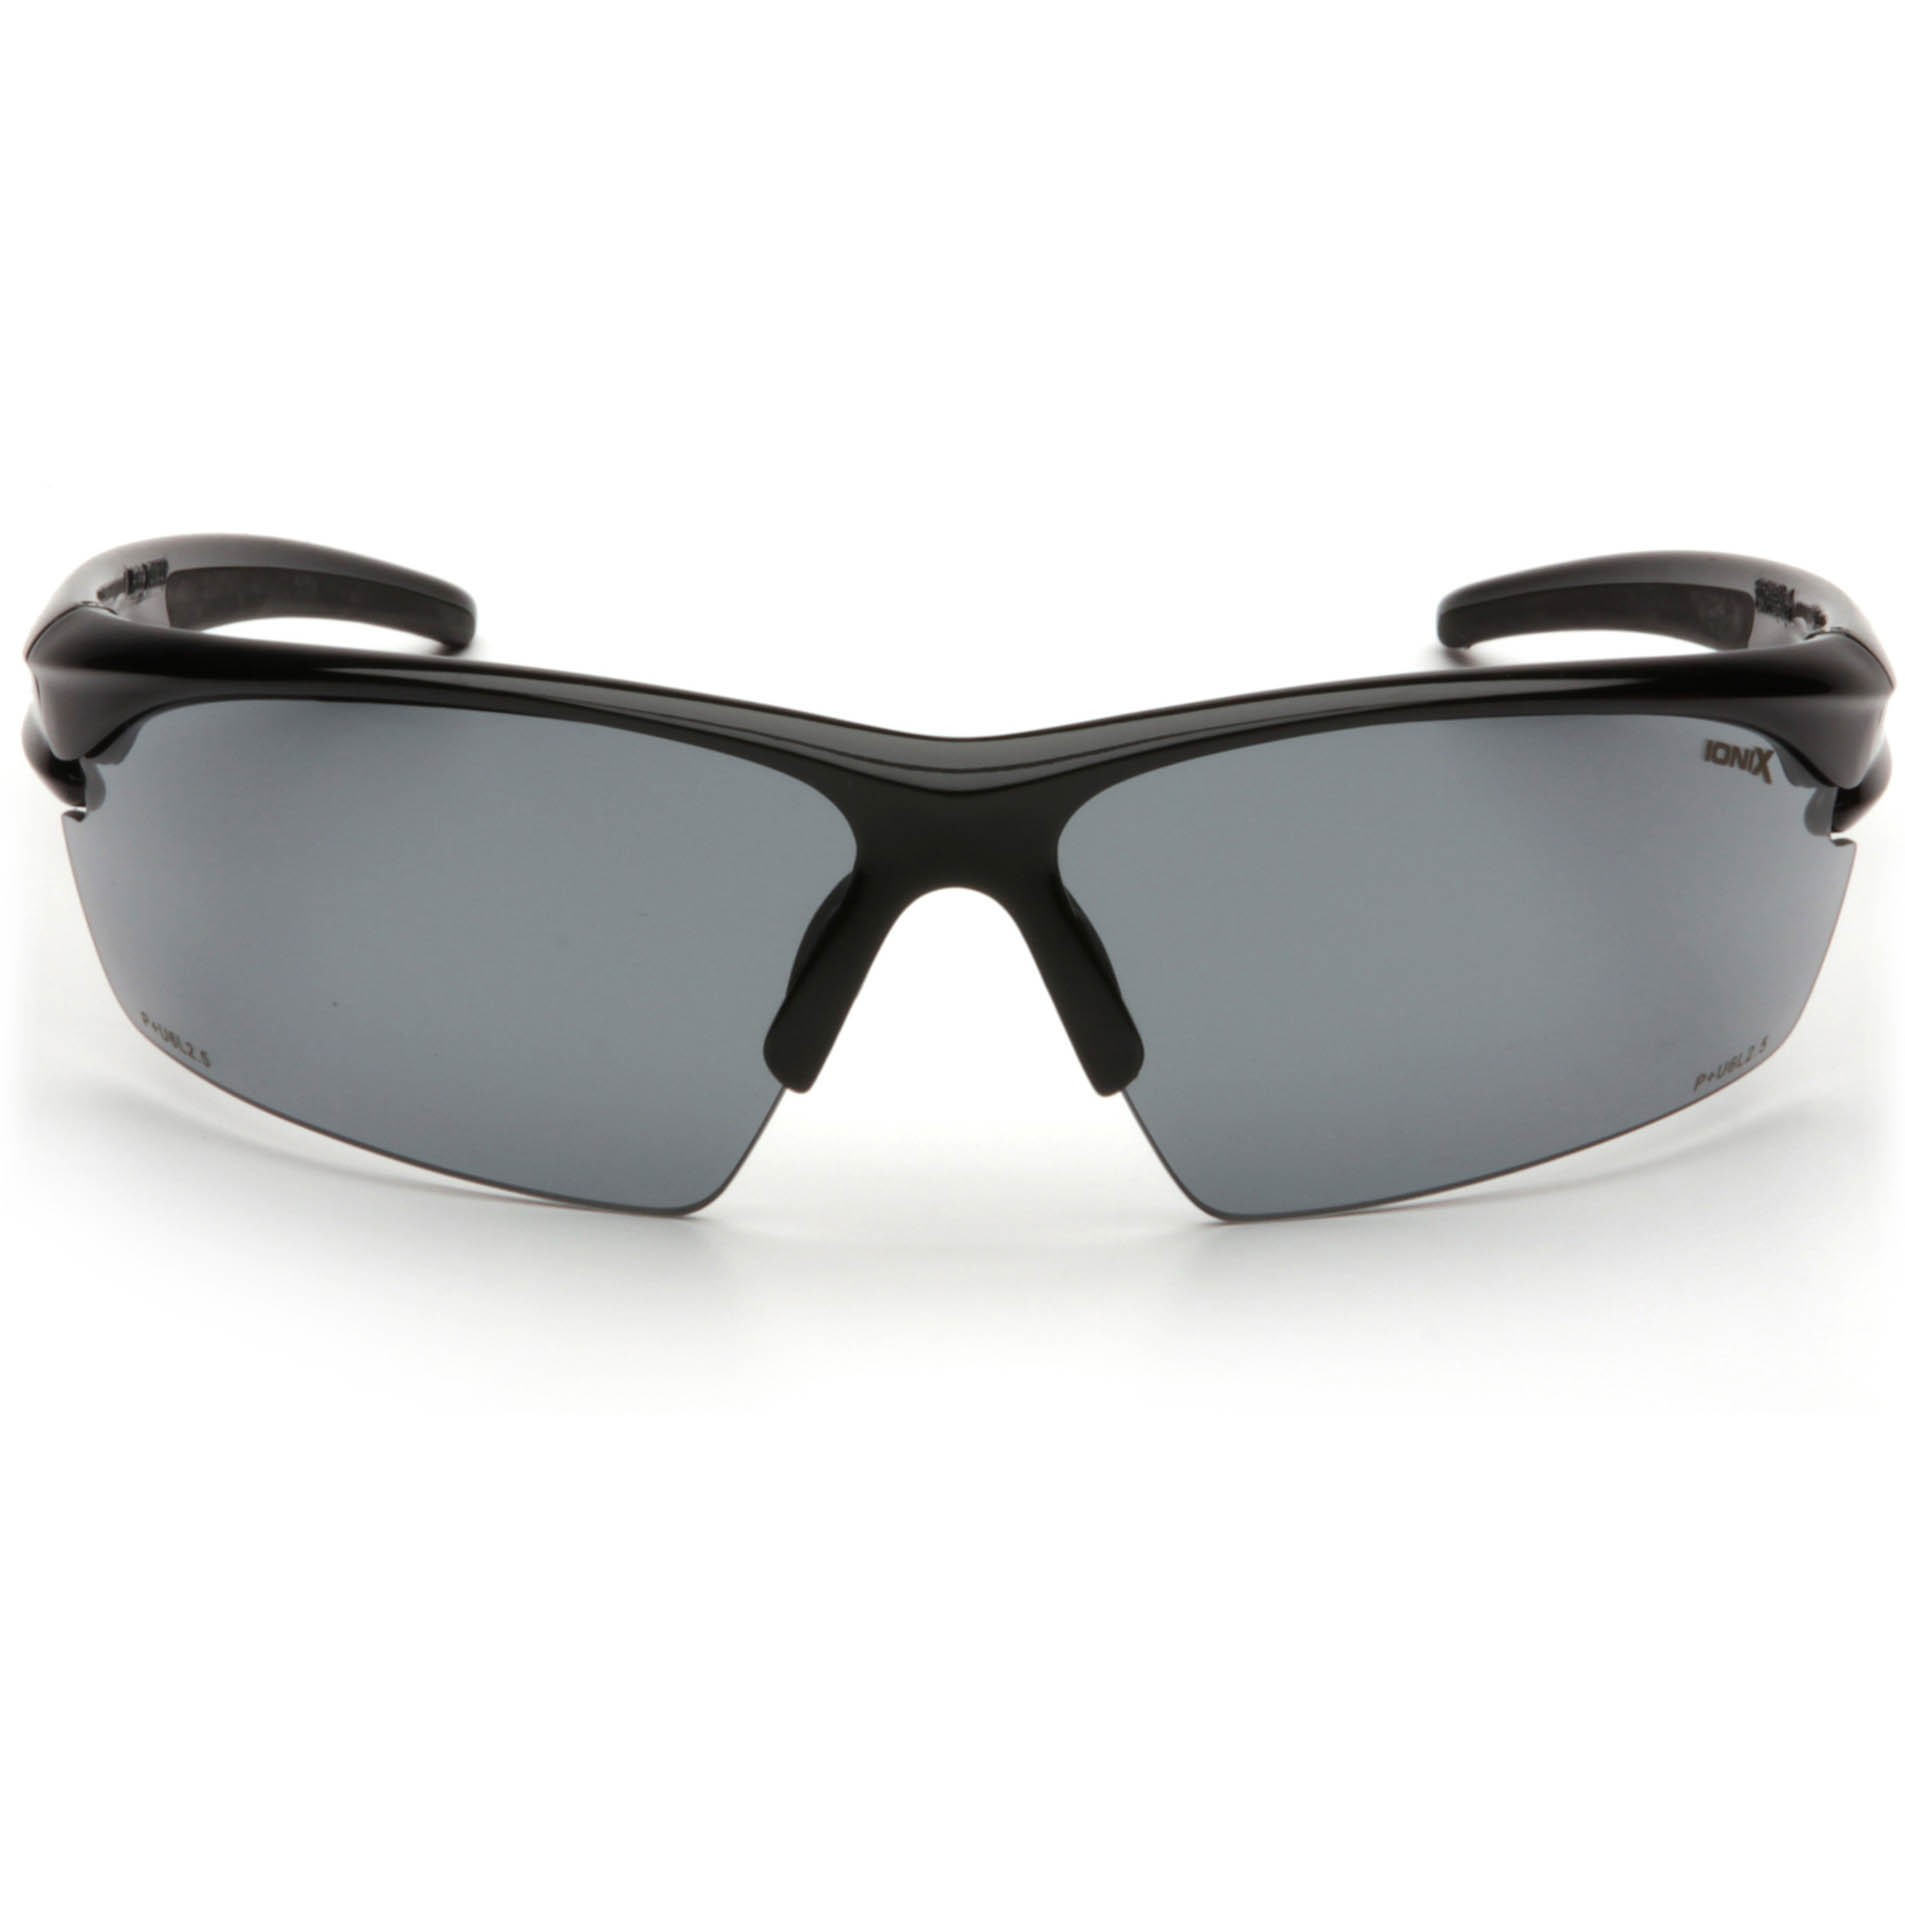 pyramex ionix safety glasses black frame gray lens